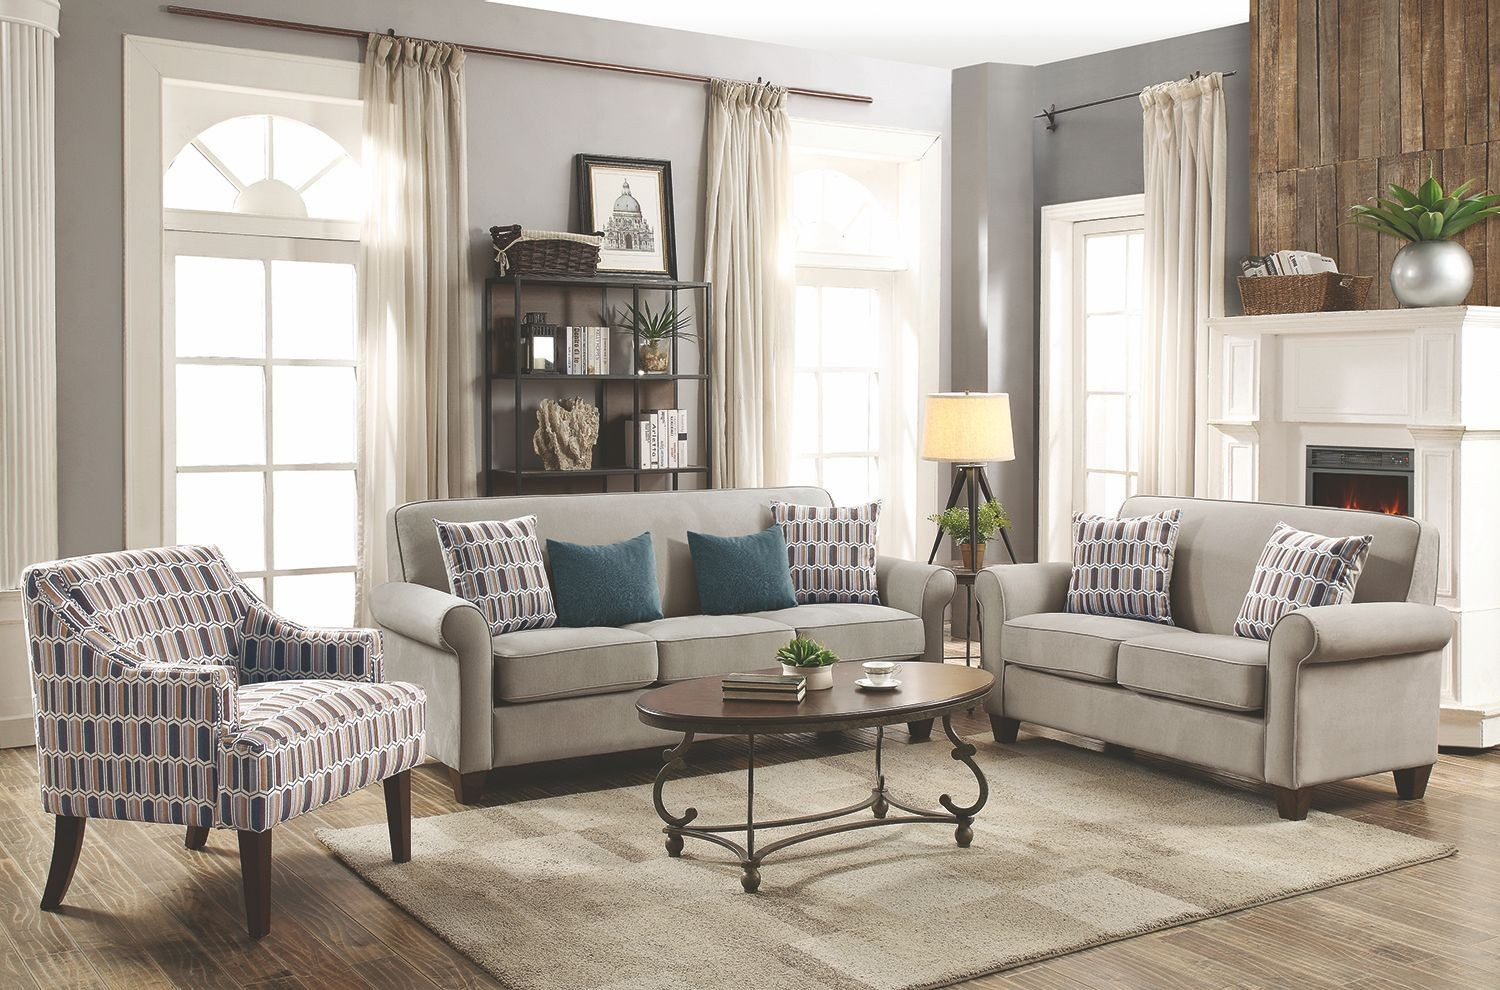 Floor model sale 2 piece gideon living room set sofa loveseat for 1099 95 sold as set only great deal while its still available